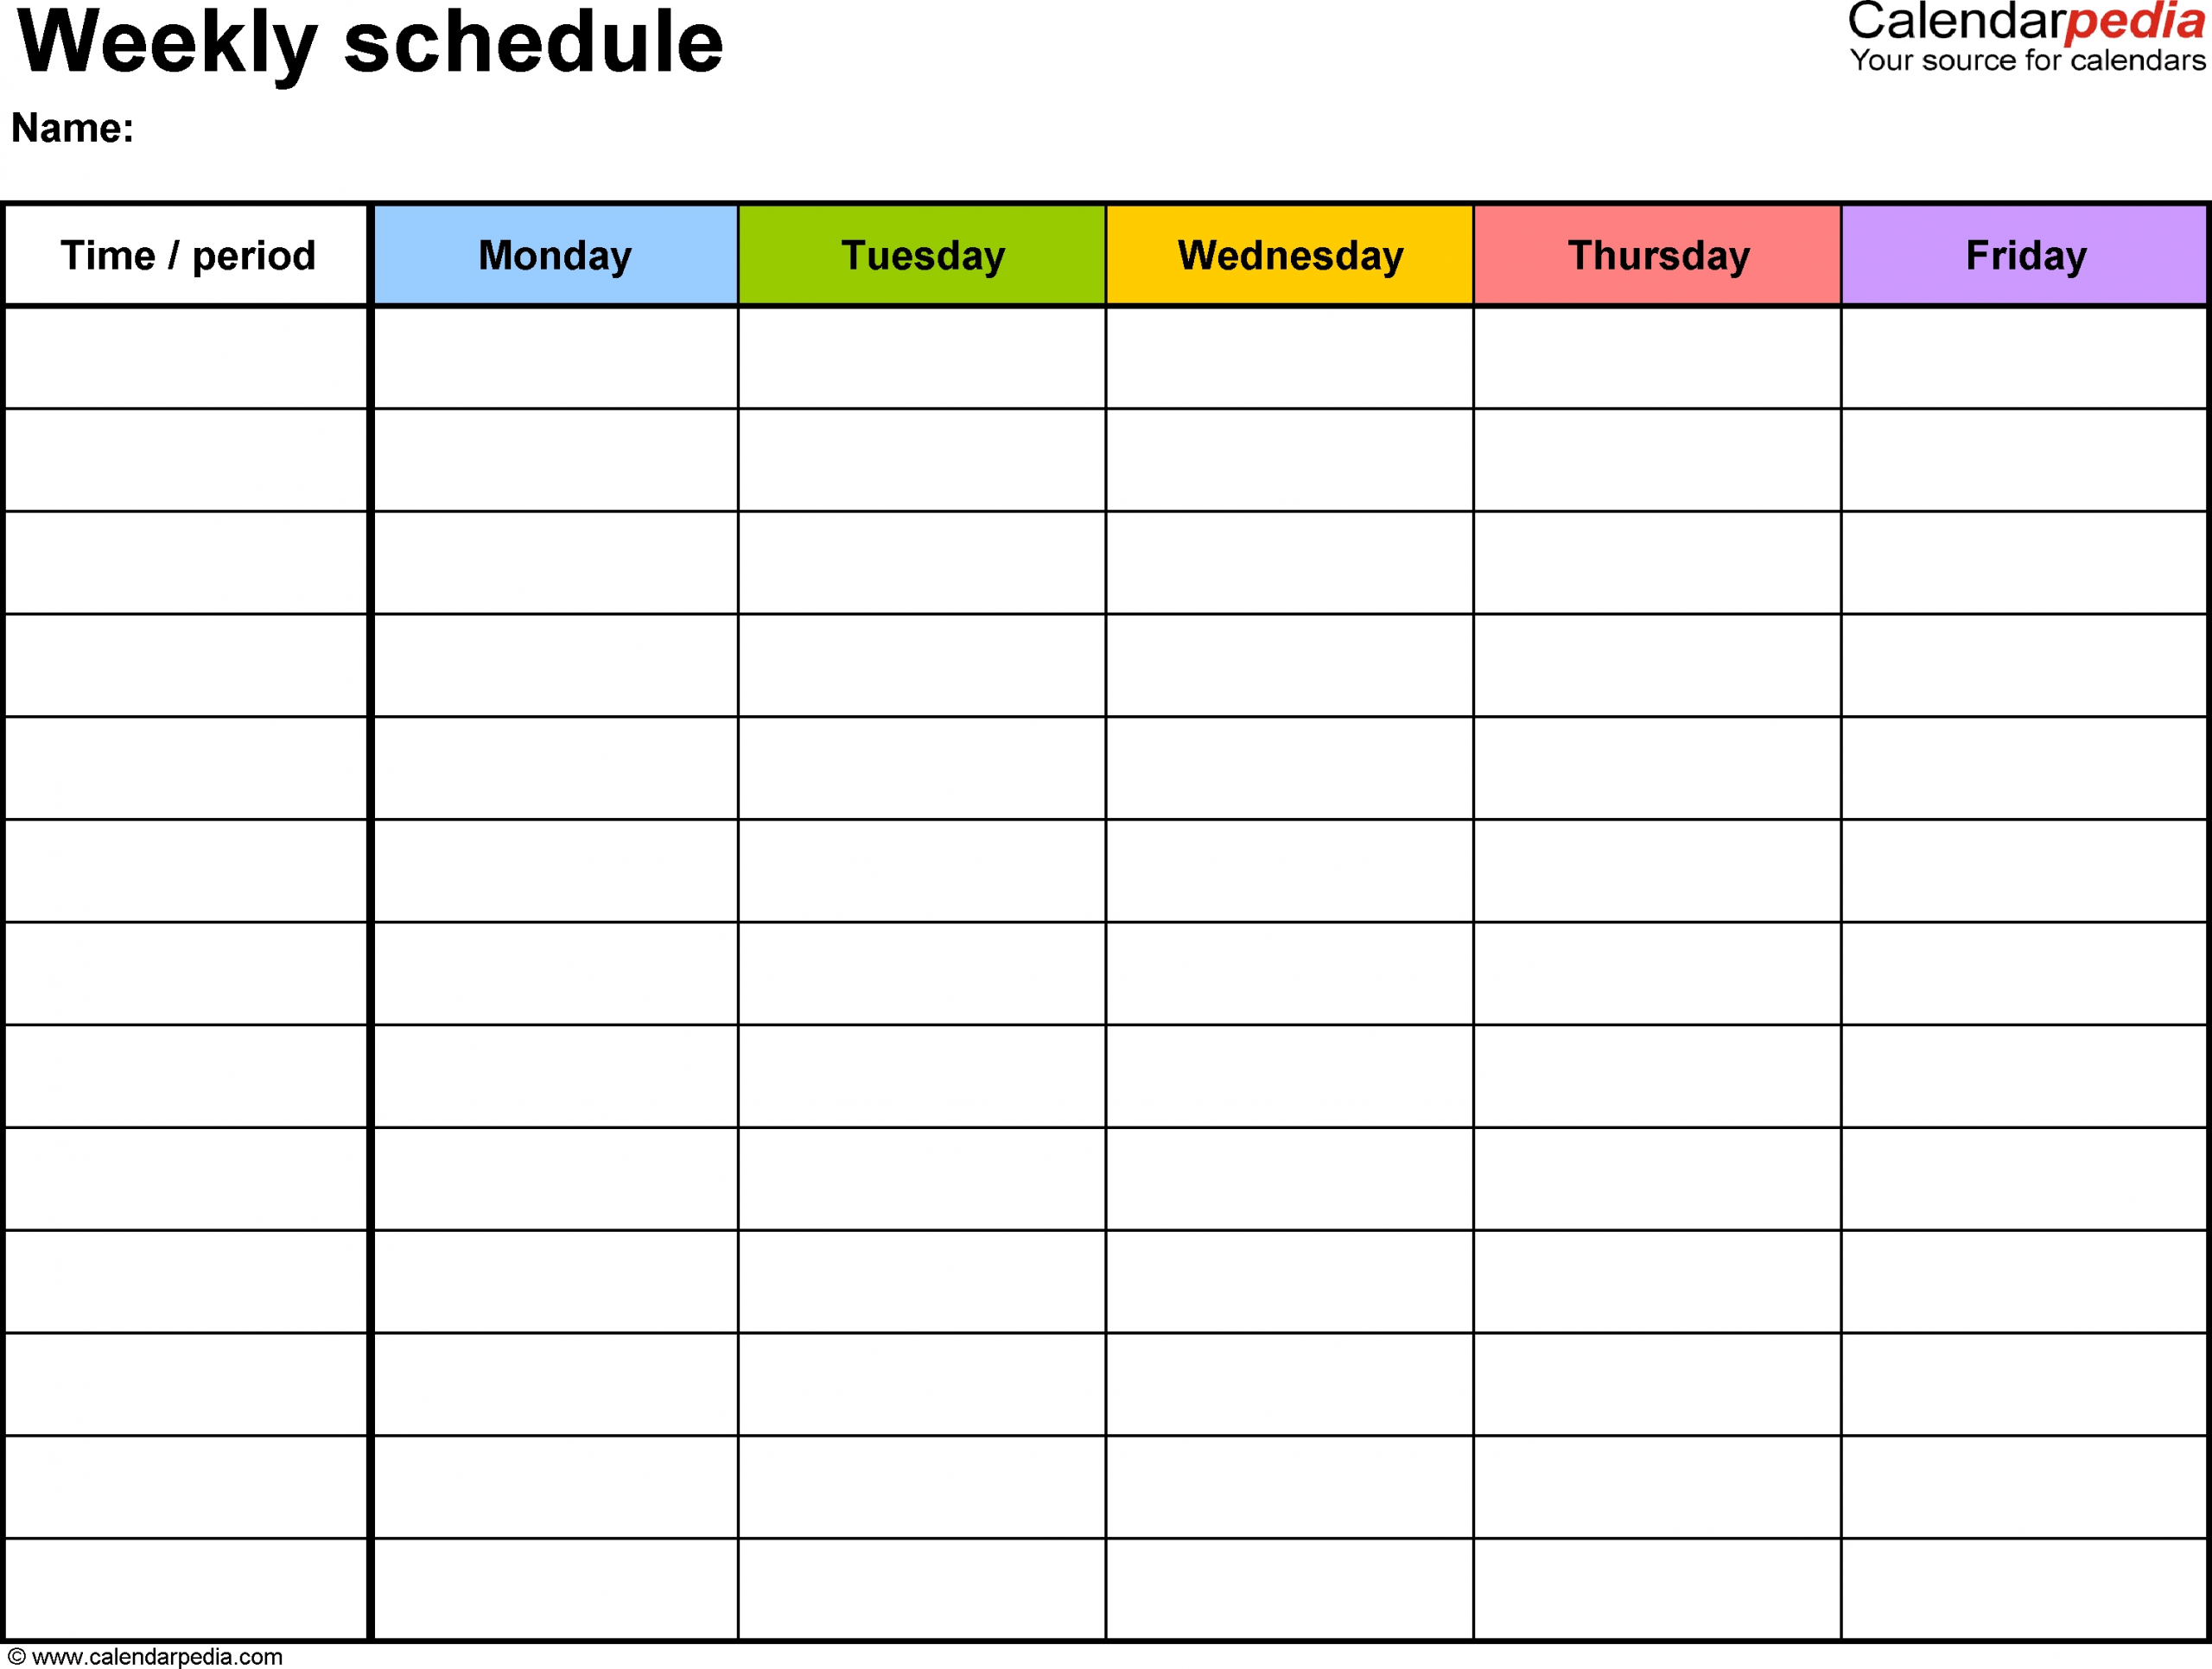 Free Weekly Schedule Templates For Word - 18 Templates regarding Monday Through Friday Activity Schedule